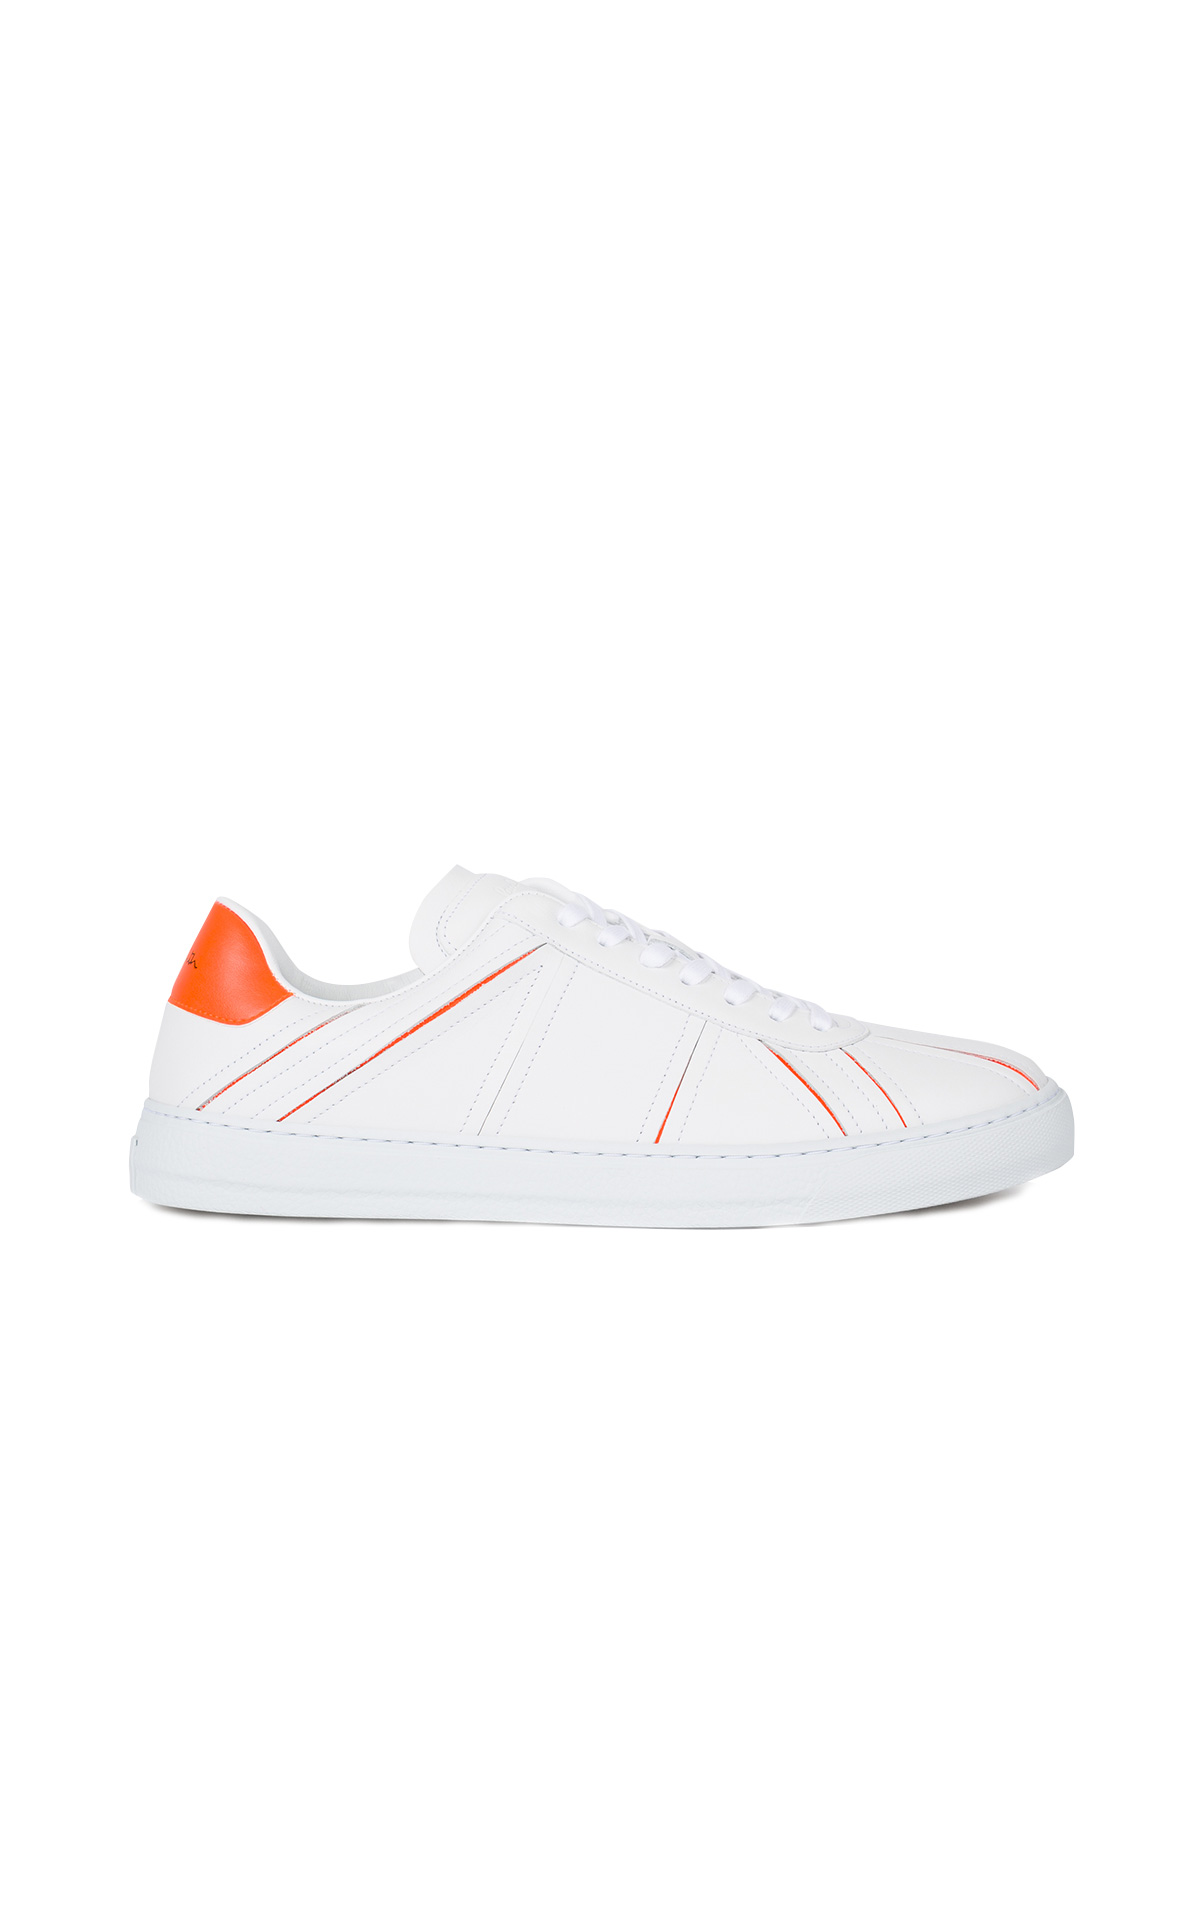 La Vallée Village Paul Smith Orange flag Levon sneakers